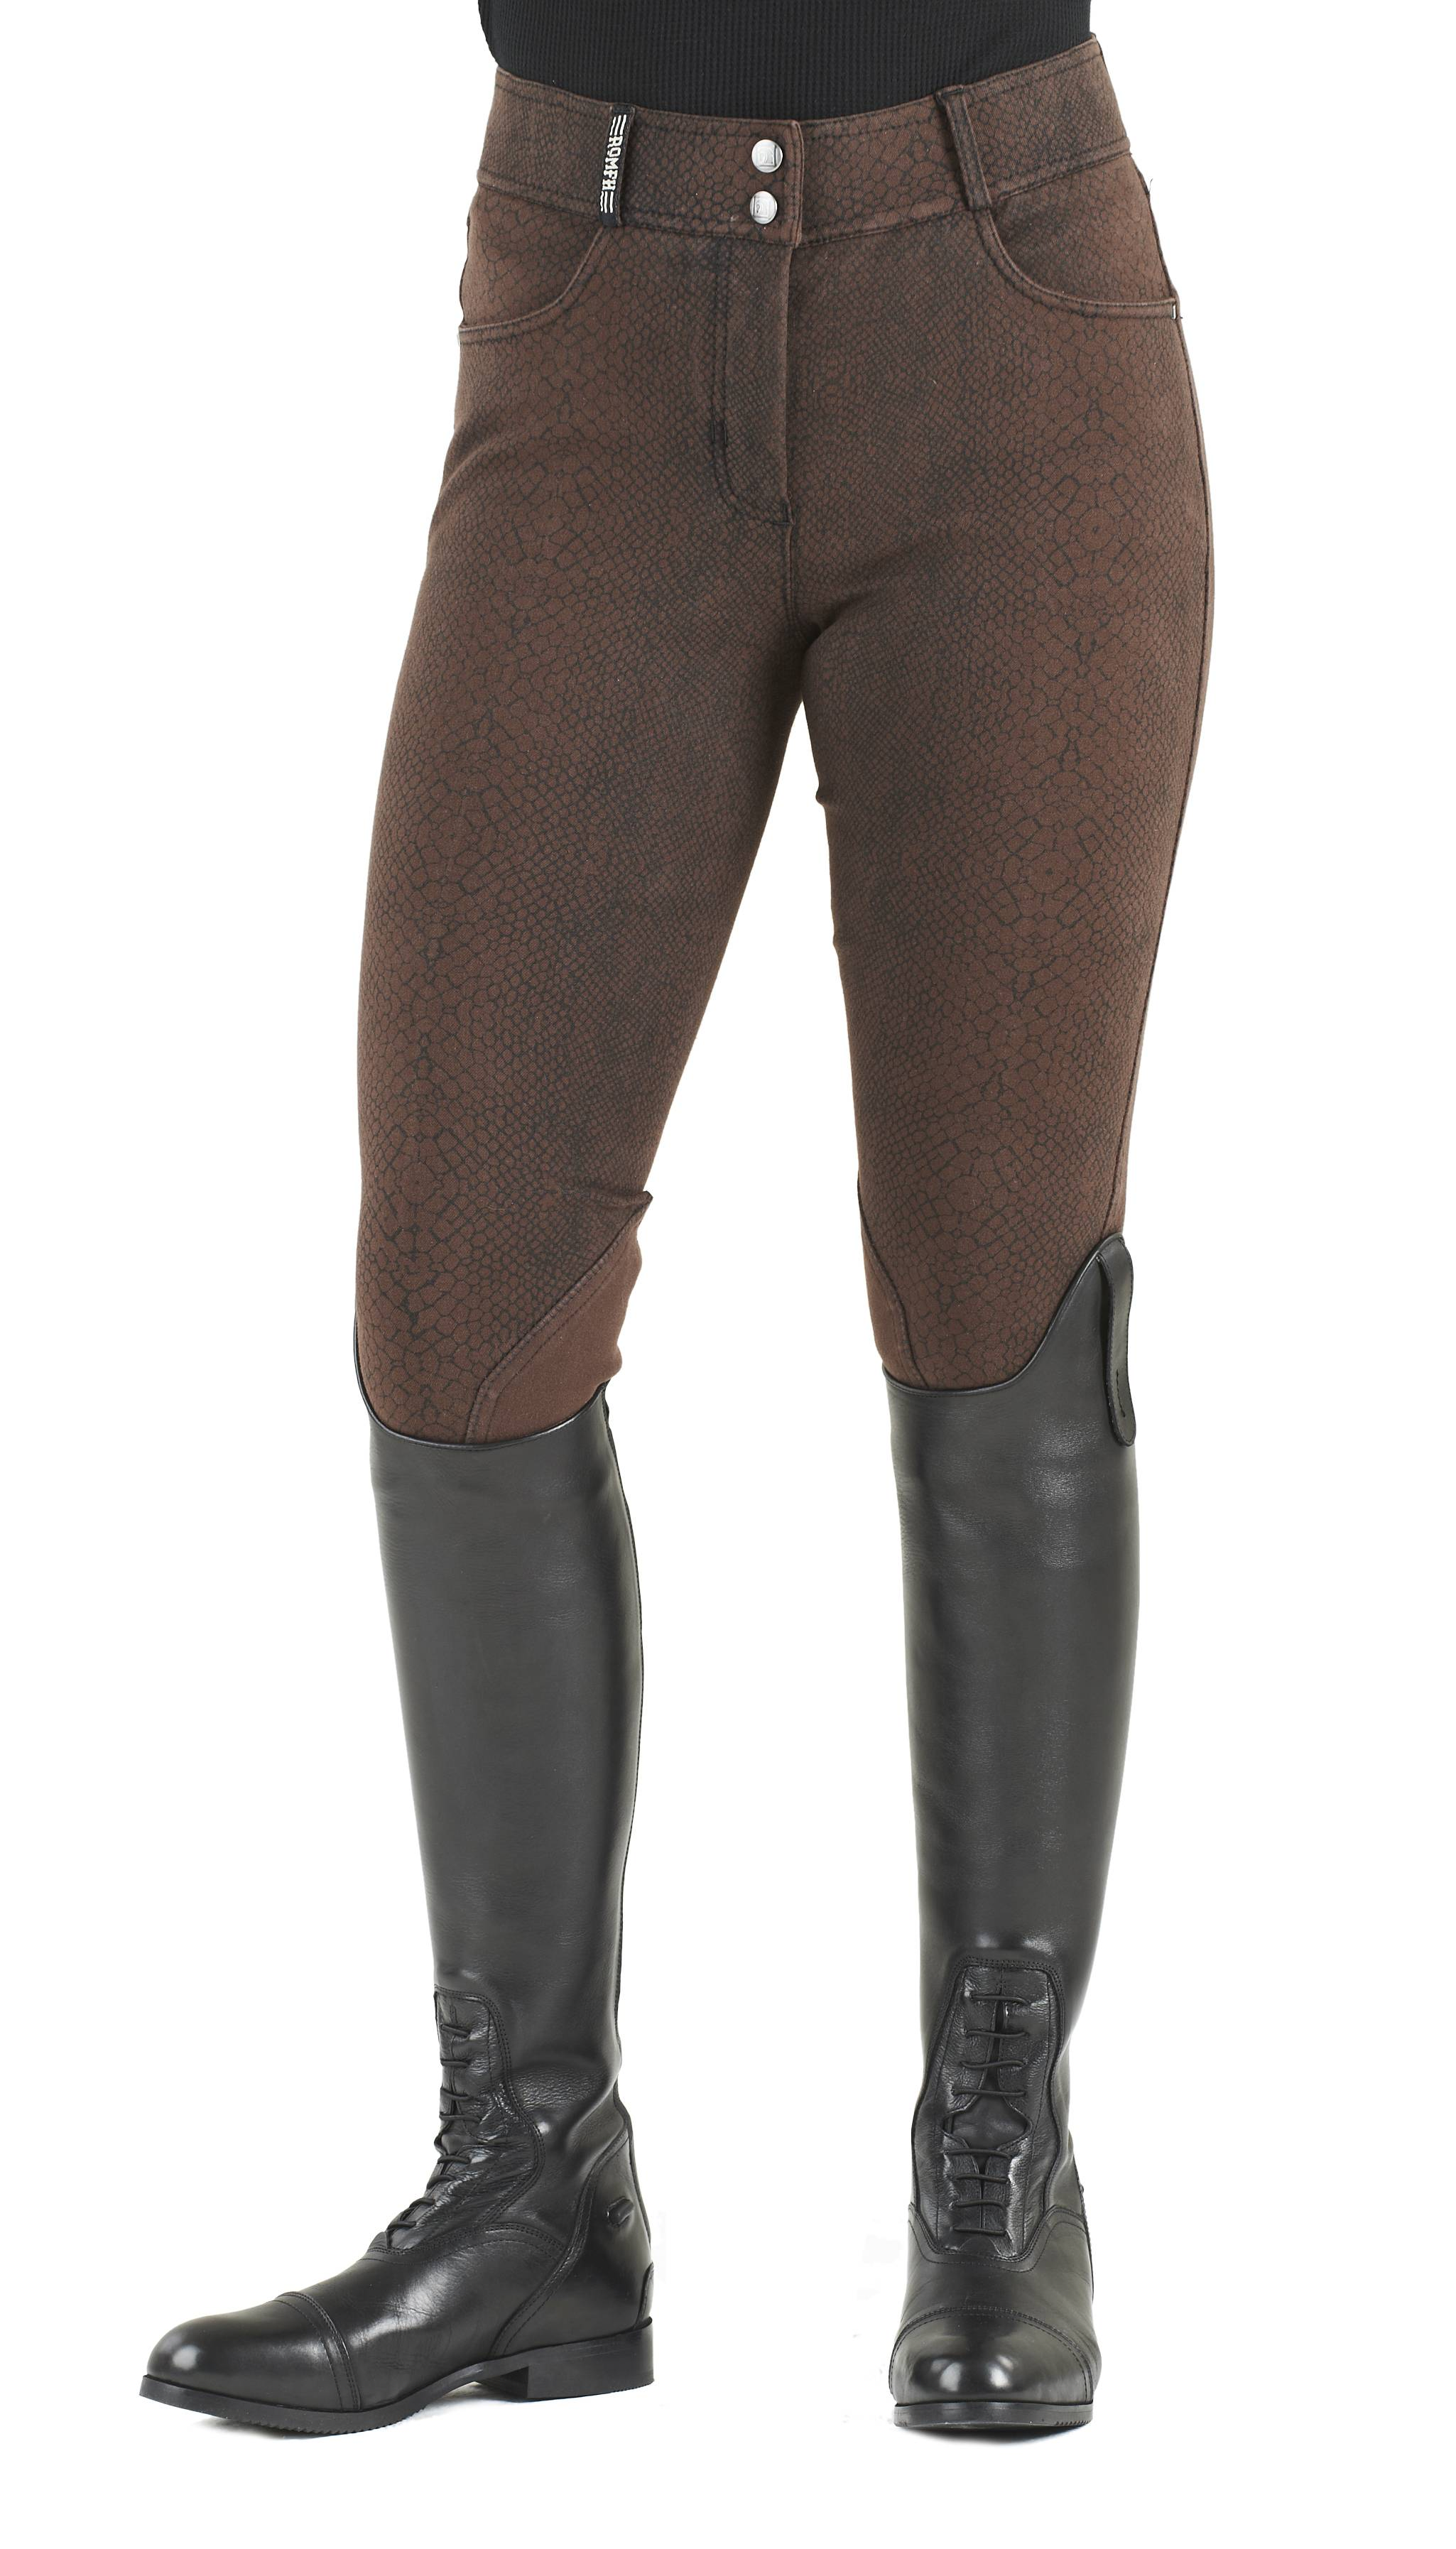 ROMFH International Snakeskin Euro Seat Breech